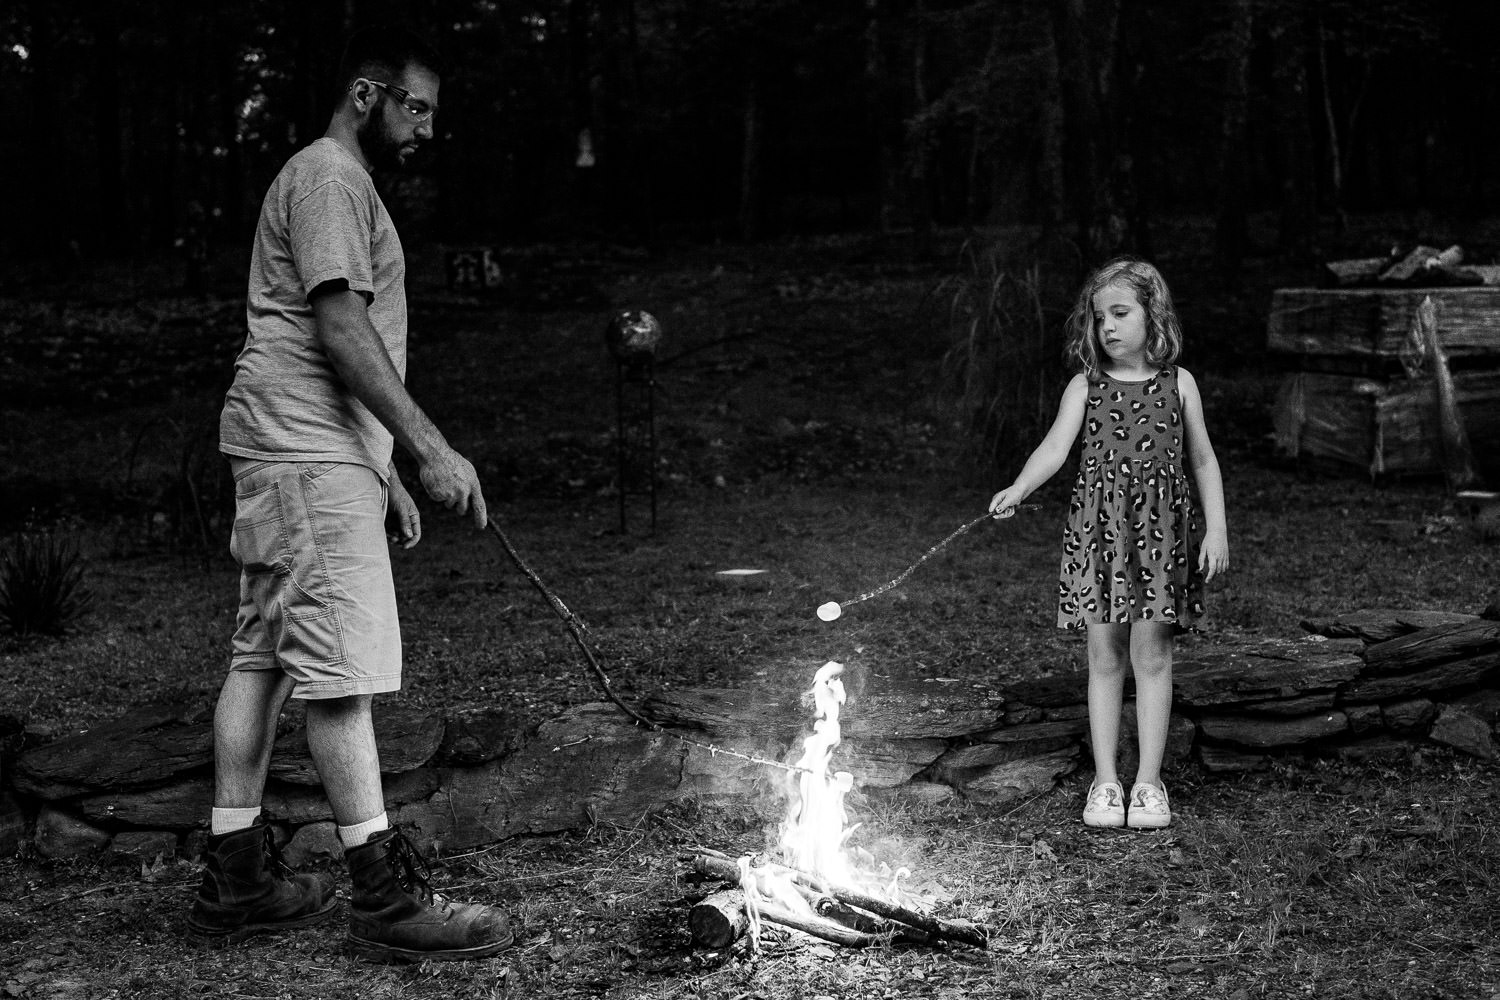 A father and daughter roast marshmallows.